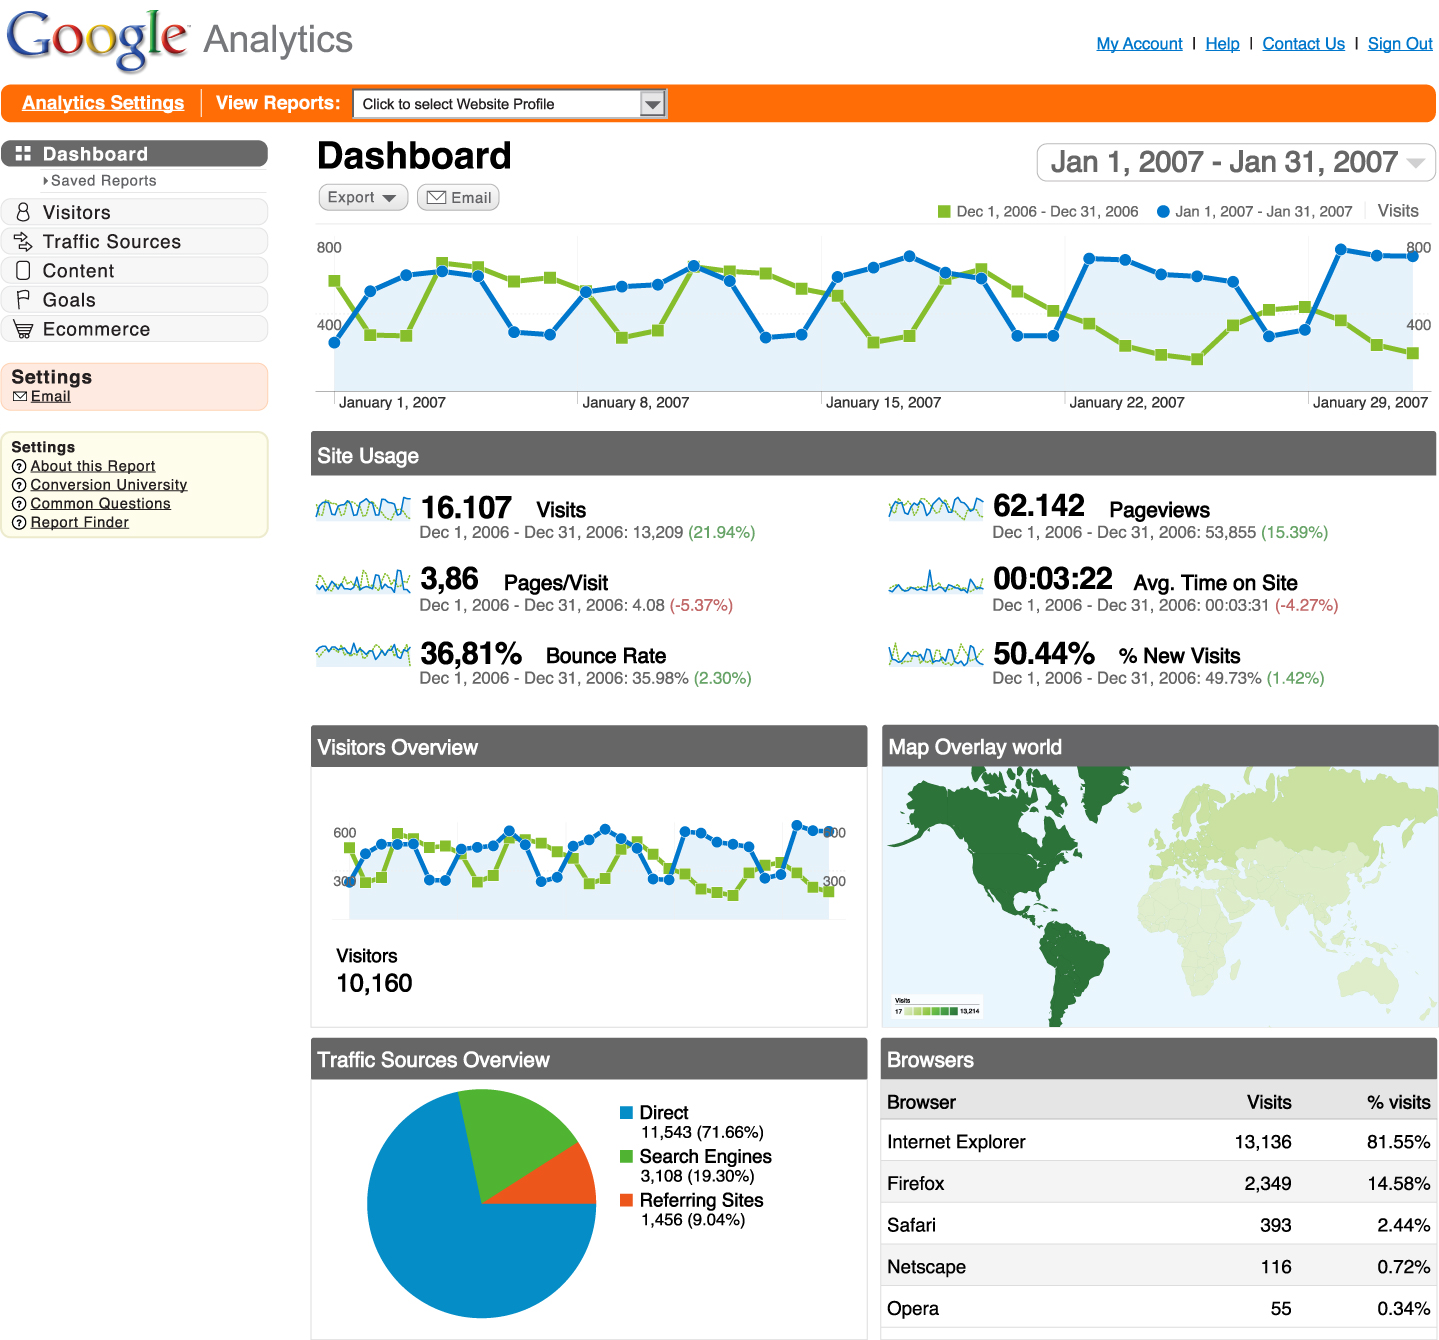 Google Analytics: 6 Crucial Metrics To Monitor Your Blog's